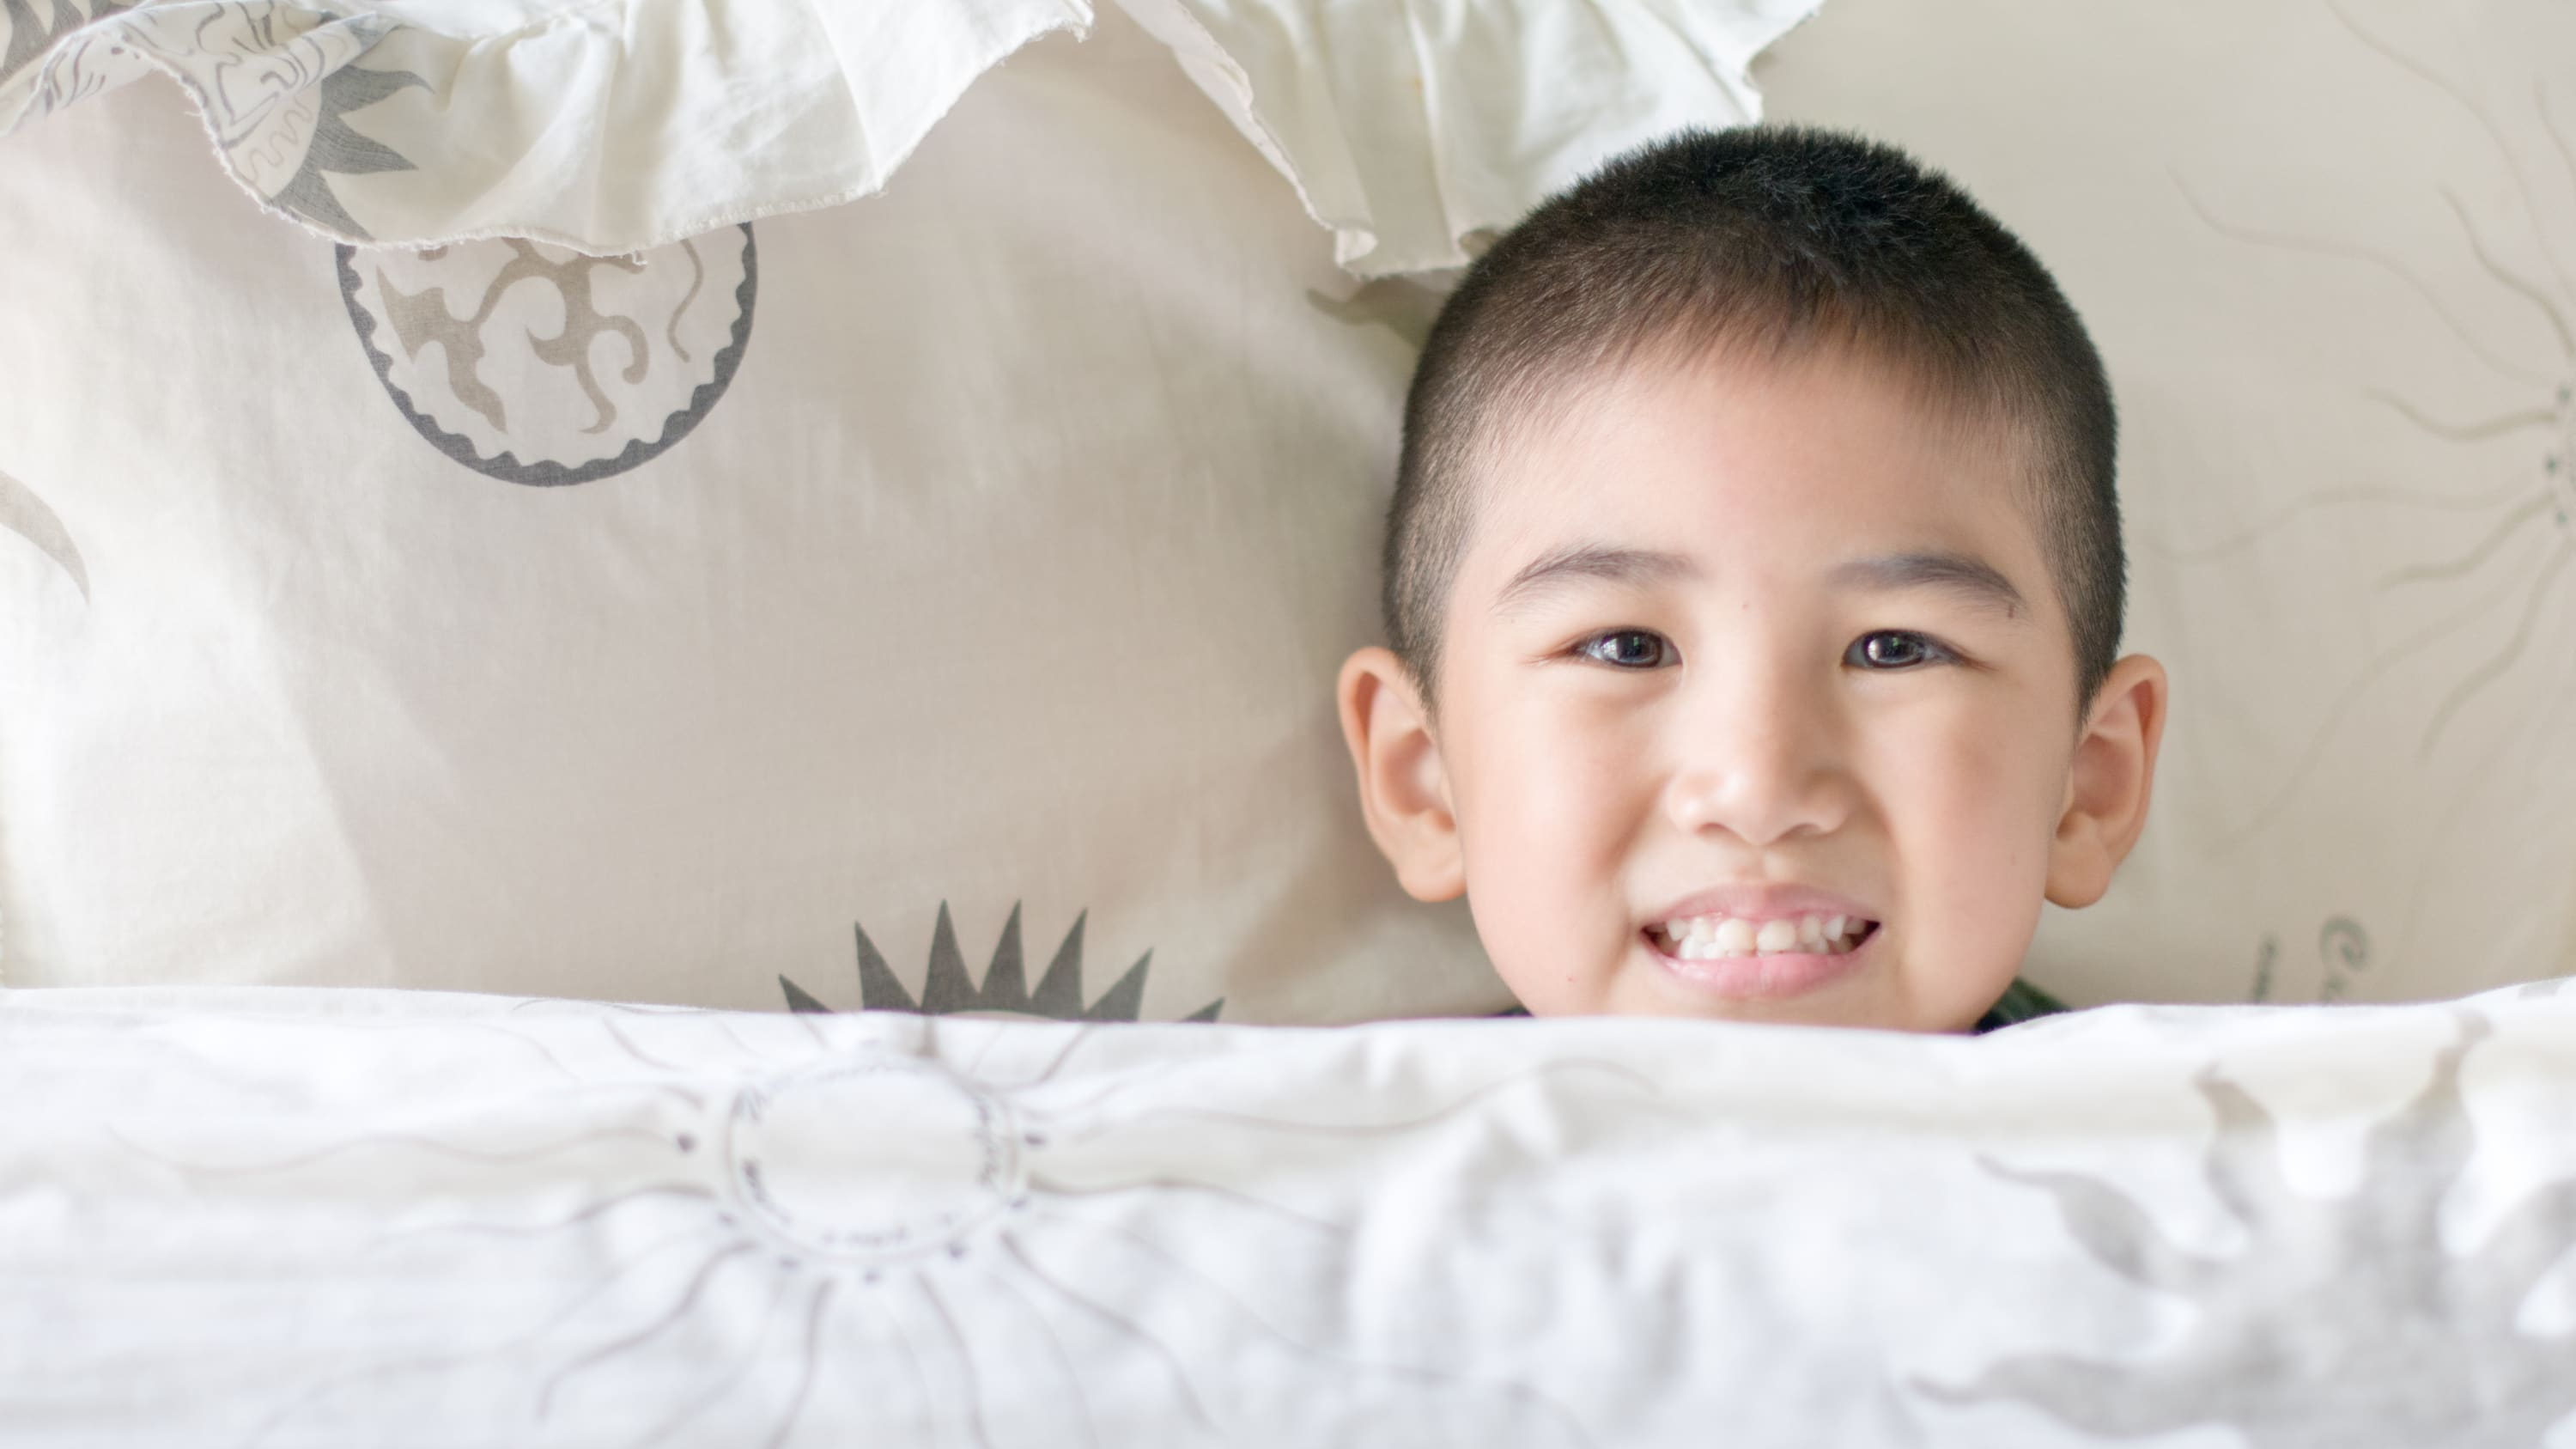 A boy rests in bed. He may need a sleep study to figure out why he has problems sleeping.